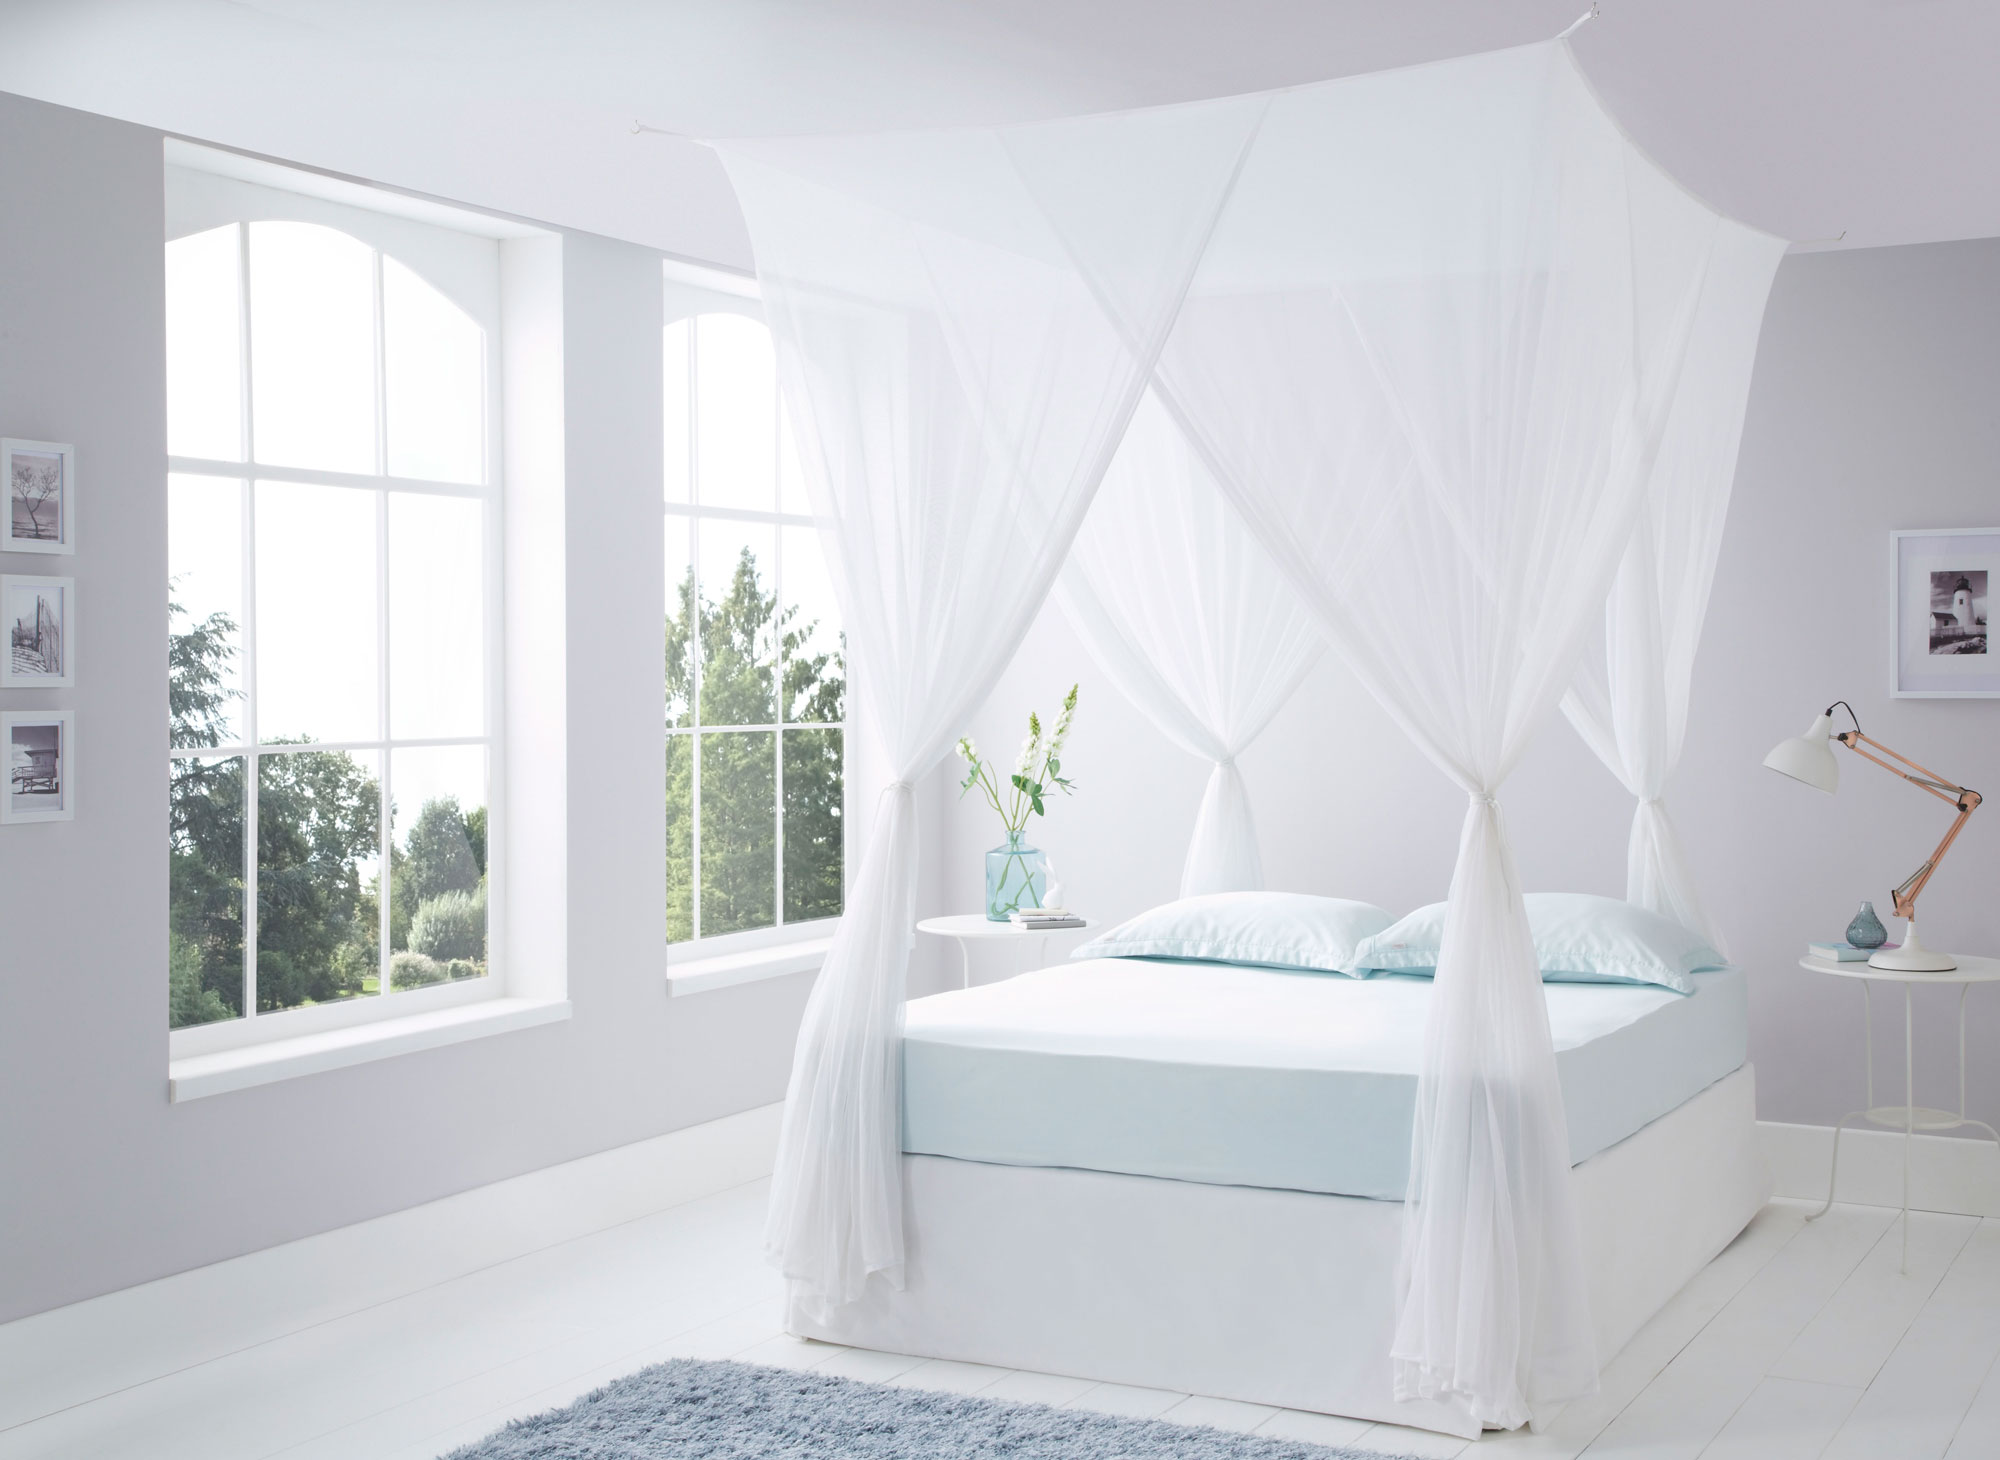 Cotton Bed Canopy Mosquito Nets. Luxurious Box Cotton Mosquito Net Super King Size : canopy mosquito net bed - memphite.com